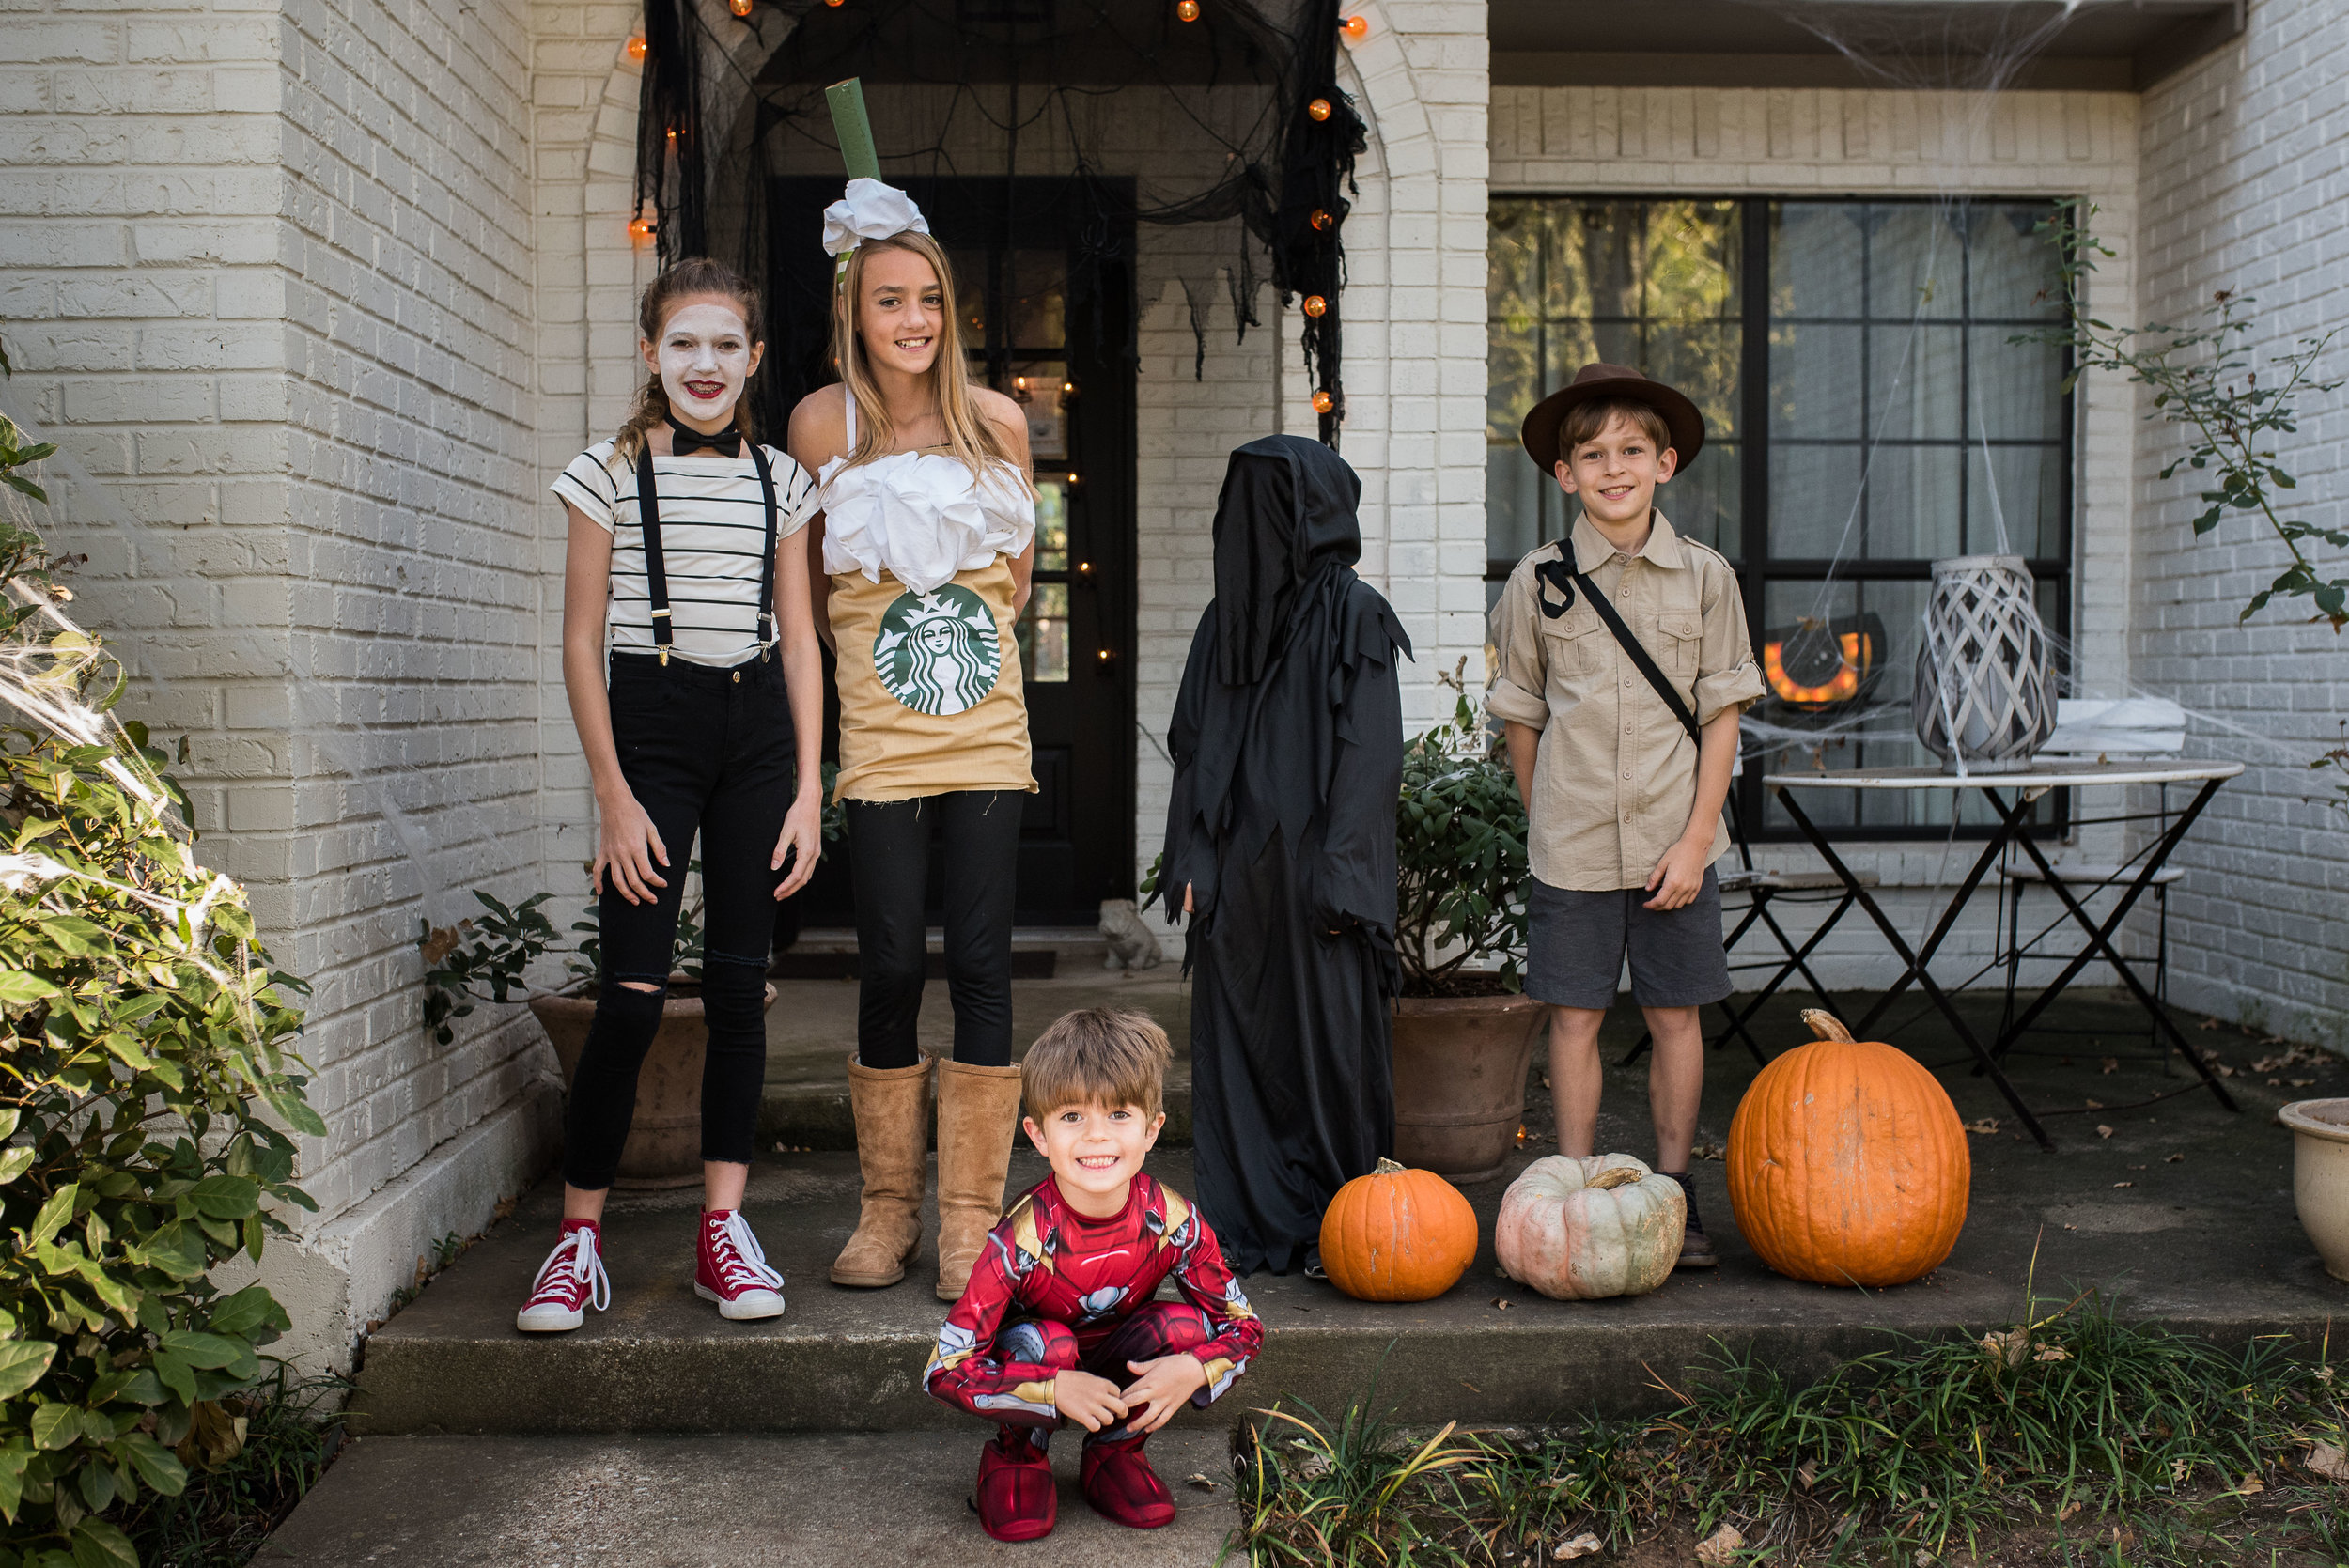 Happy Halloween! From our mime, her friend the Frappucino, Indiana Jones and his friend the Grim Reaper, and of course, Iron Man (who decided he didn't like the light-up mask and gloves he HAD to have.)